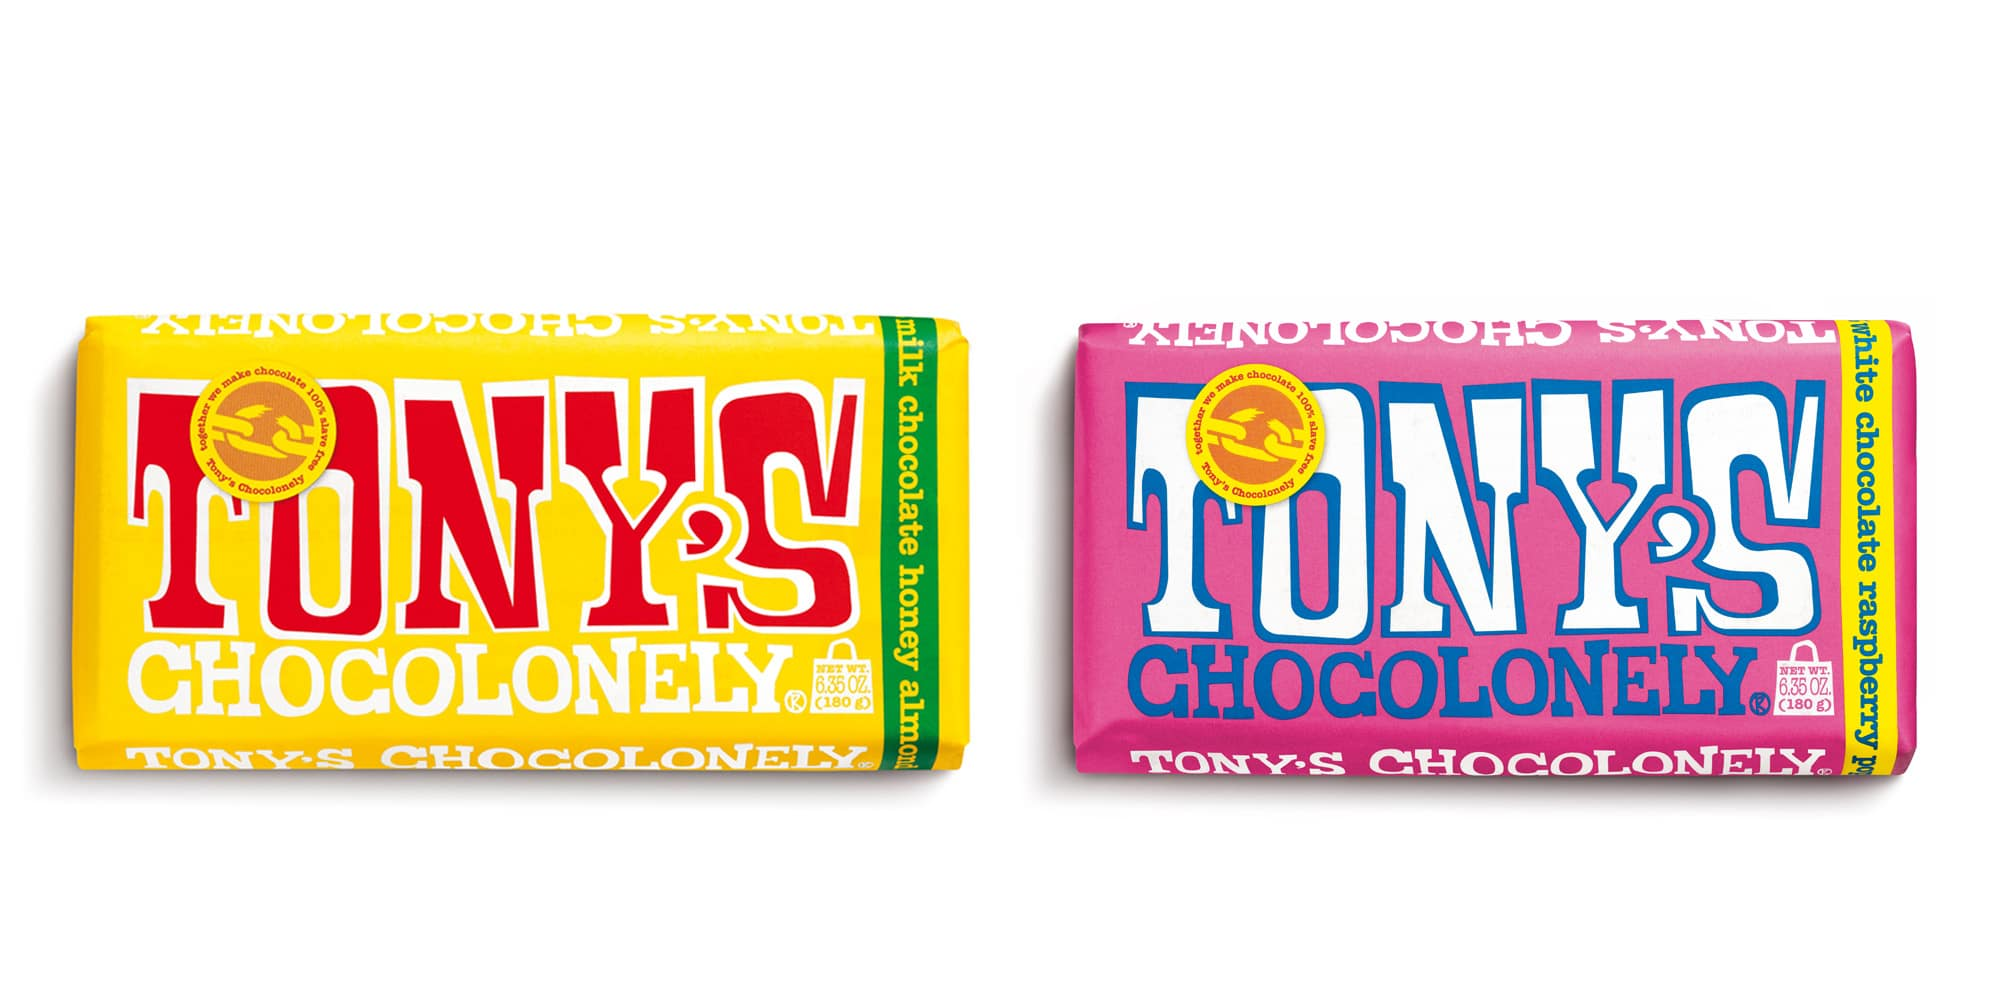 Tony's Chocolonely Launches Two New Chocolate Flavors